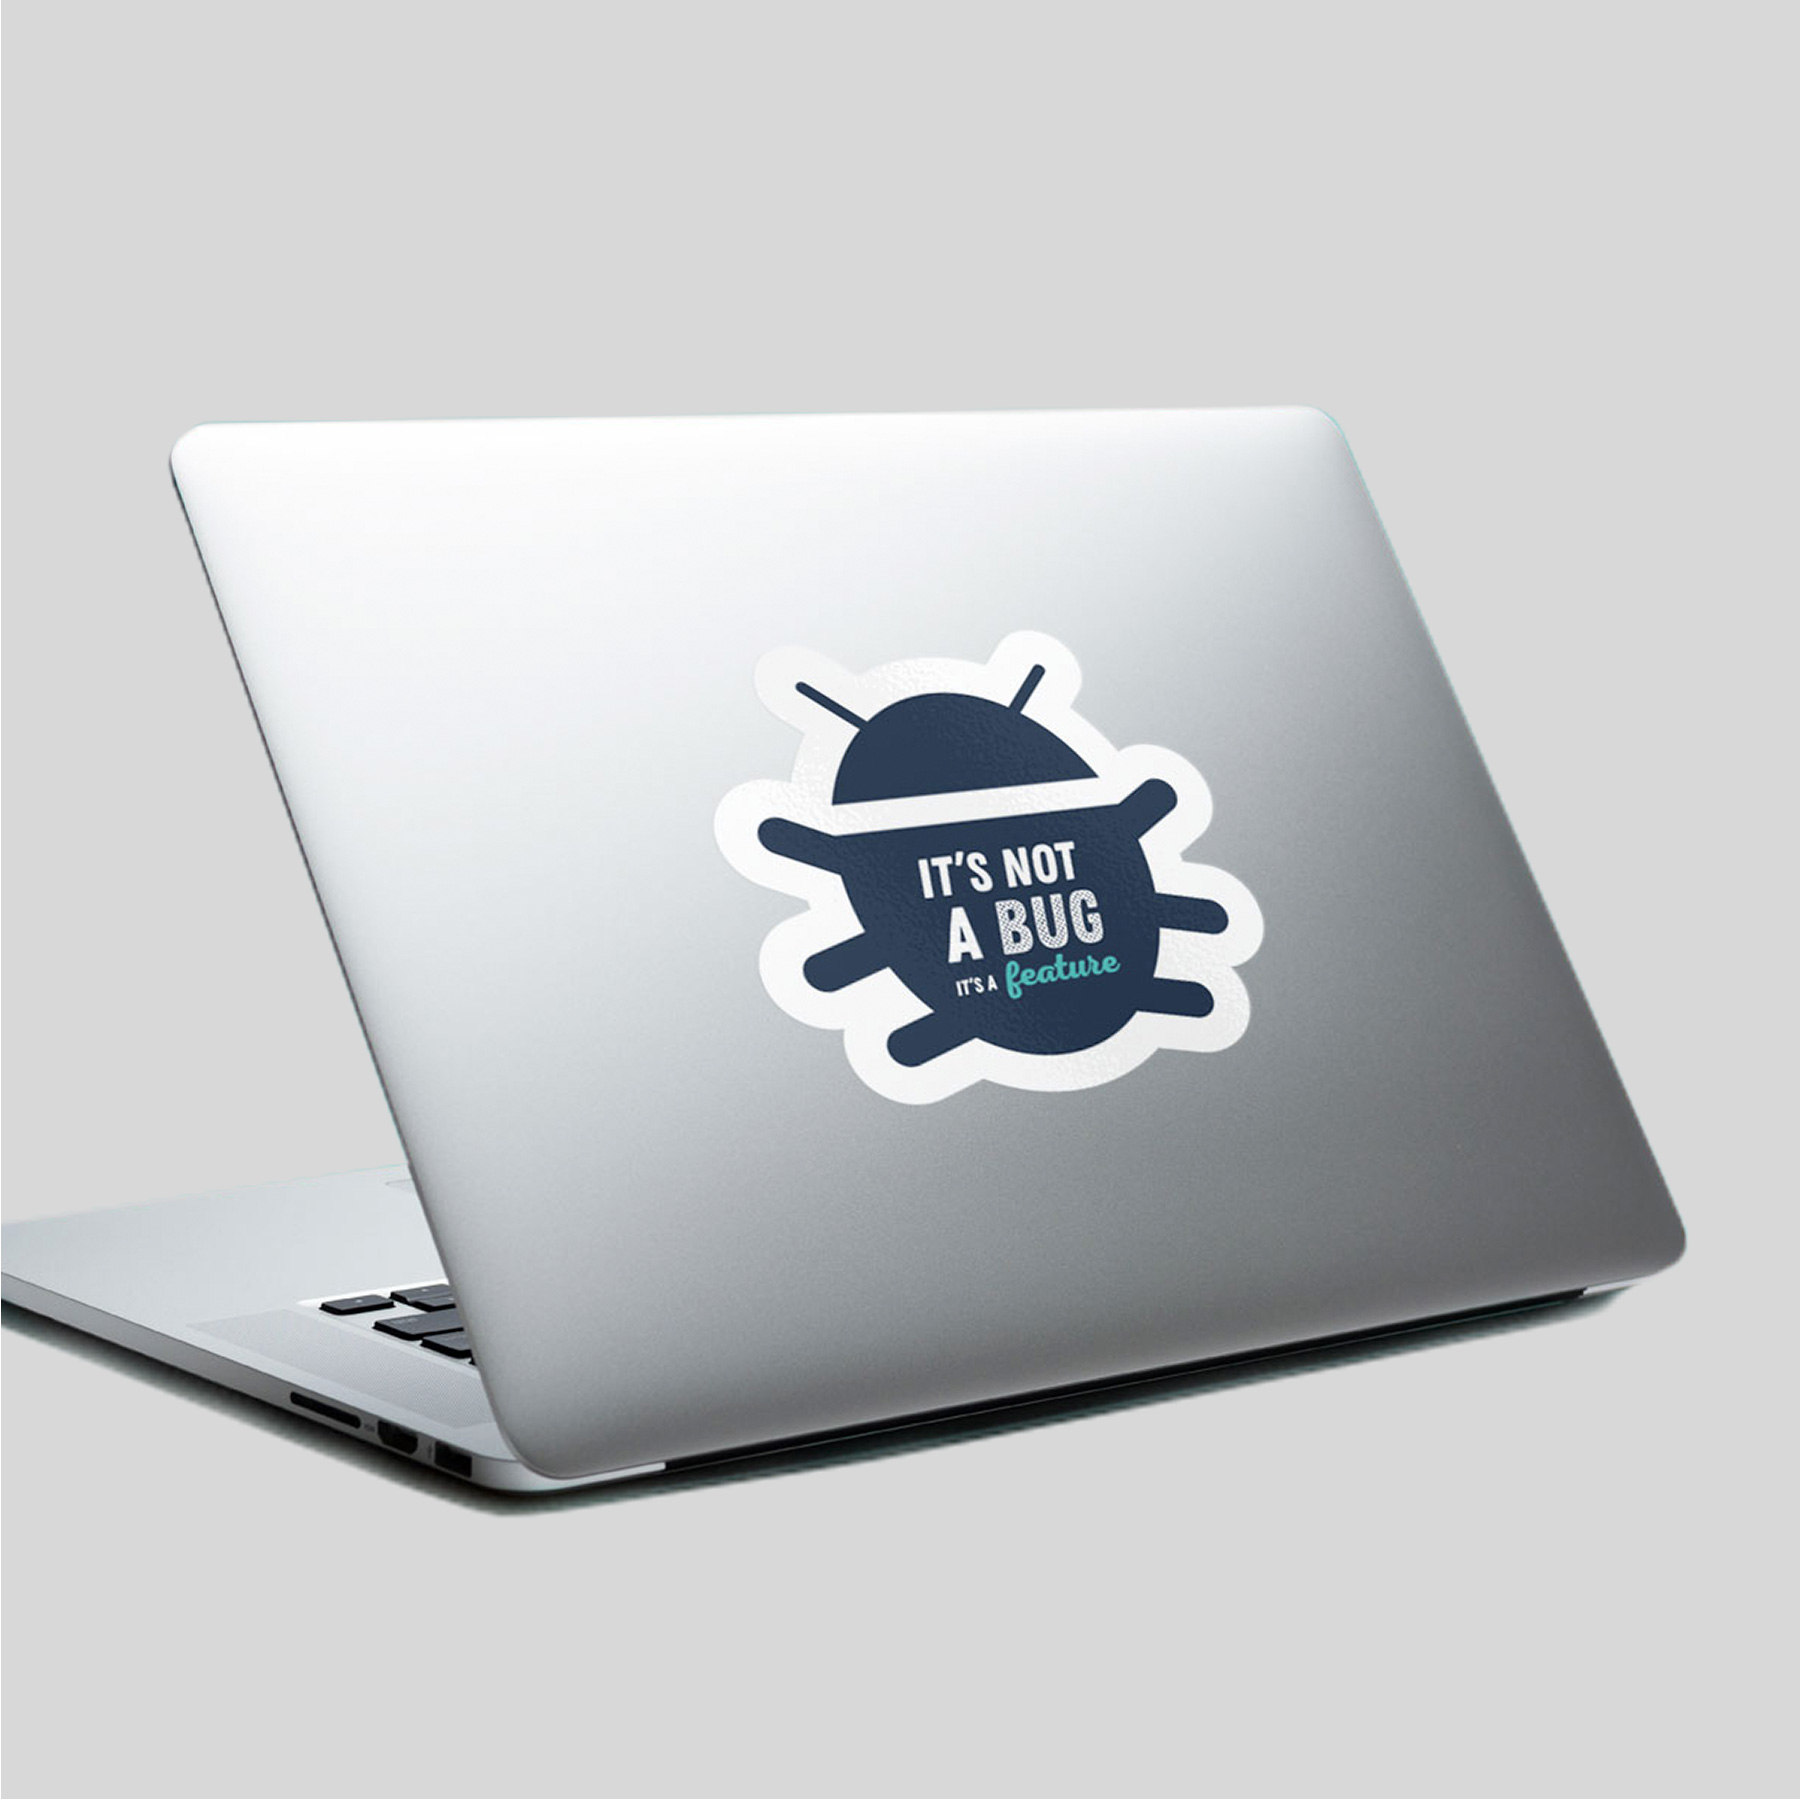 Templates laptopstickers